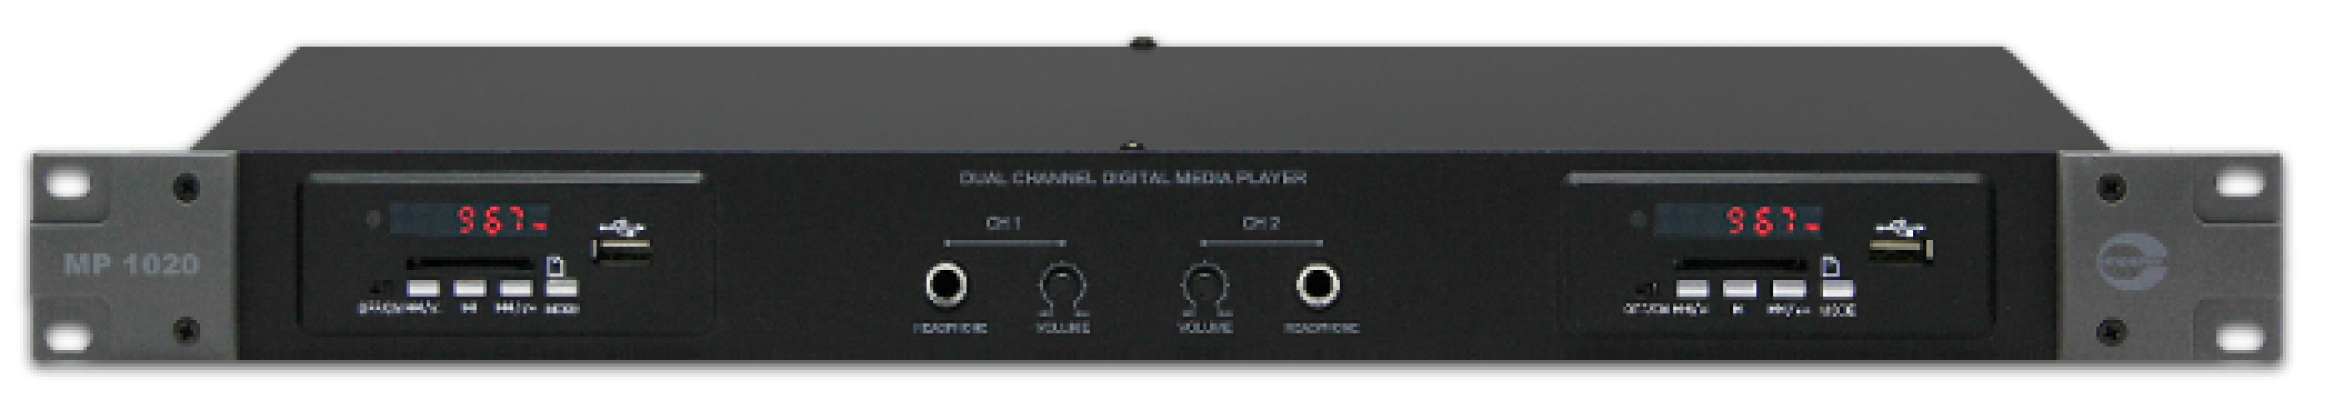 MP1020 [ 2 CHANNEL MEDIA PLAYER ]